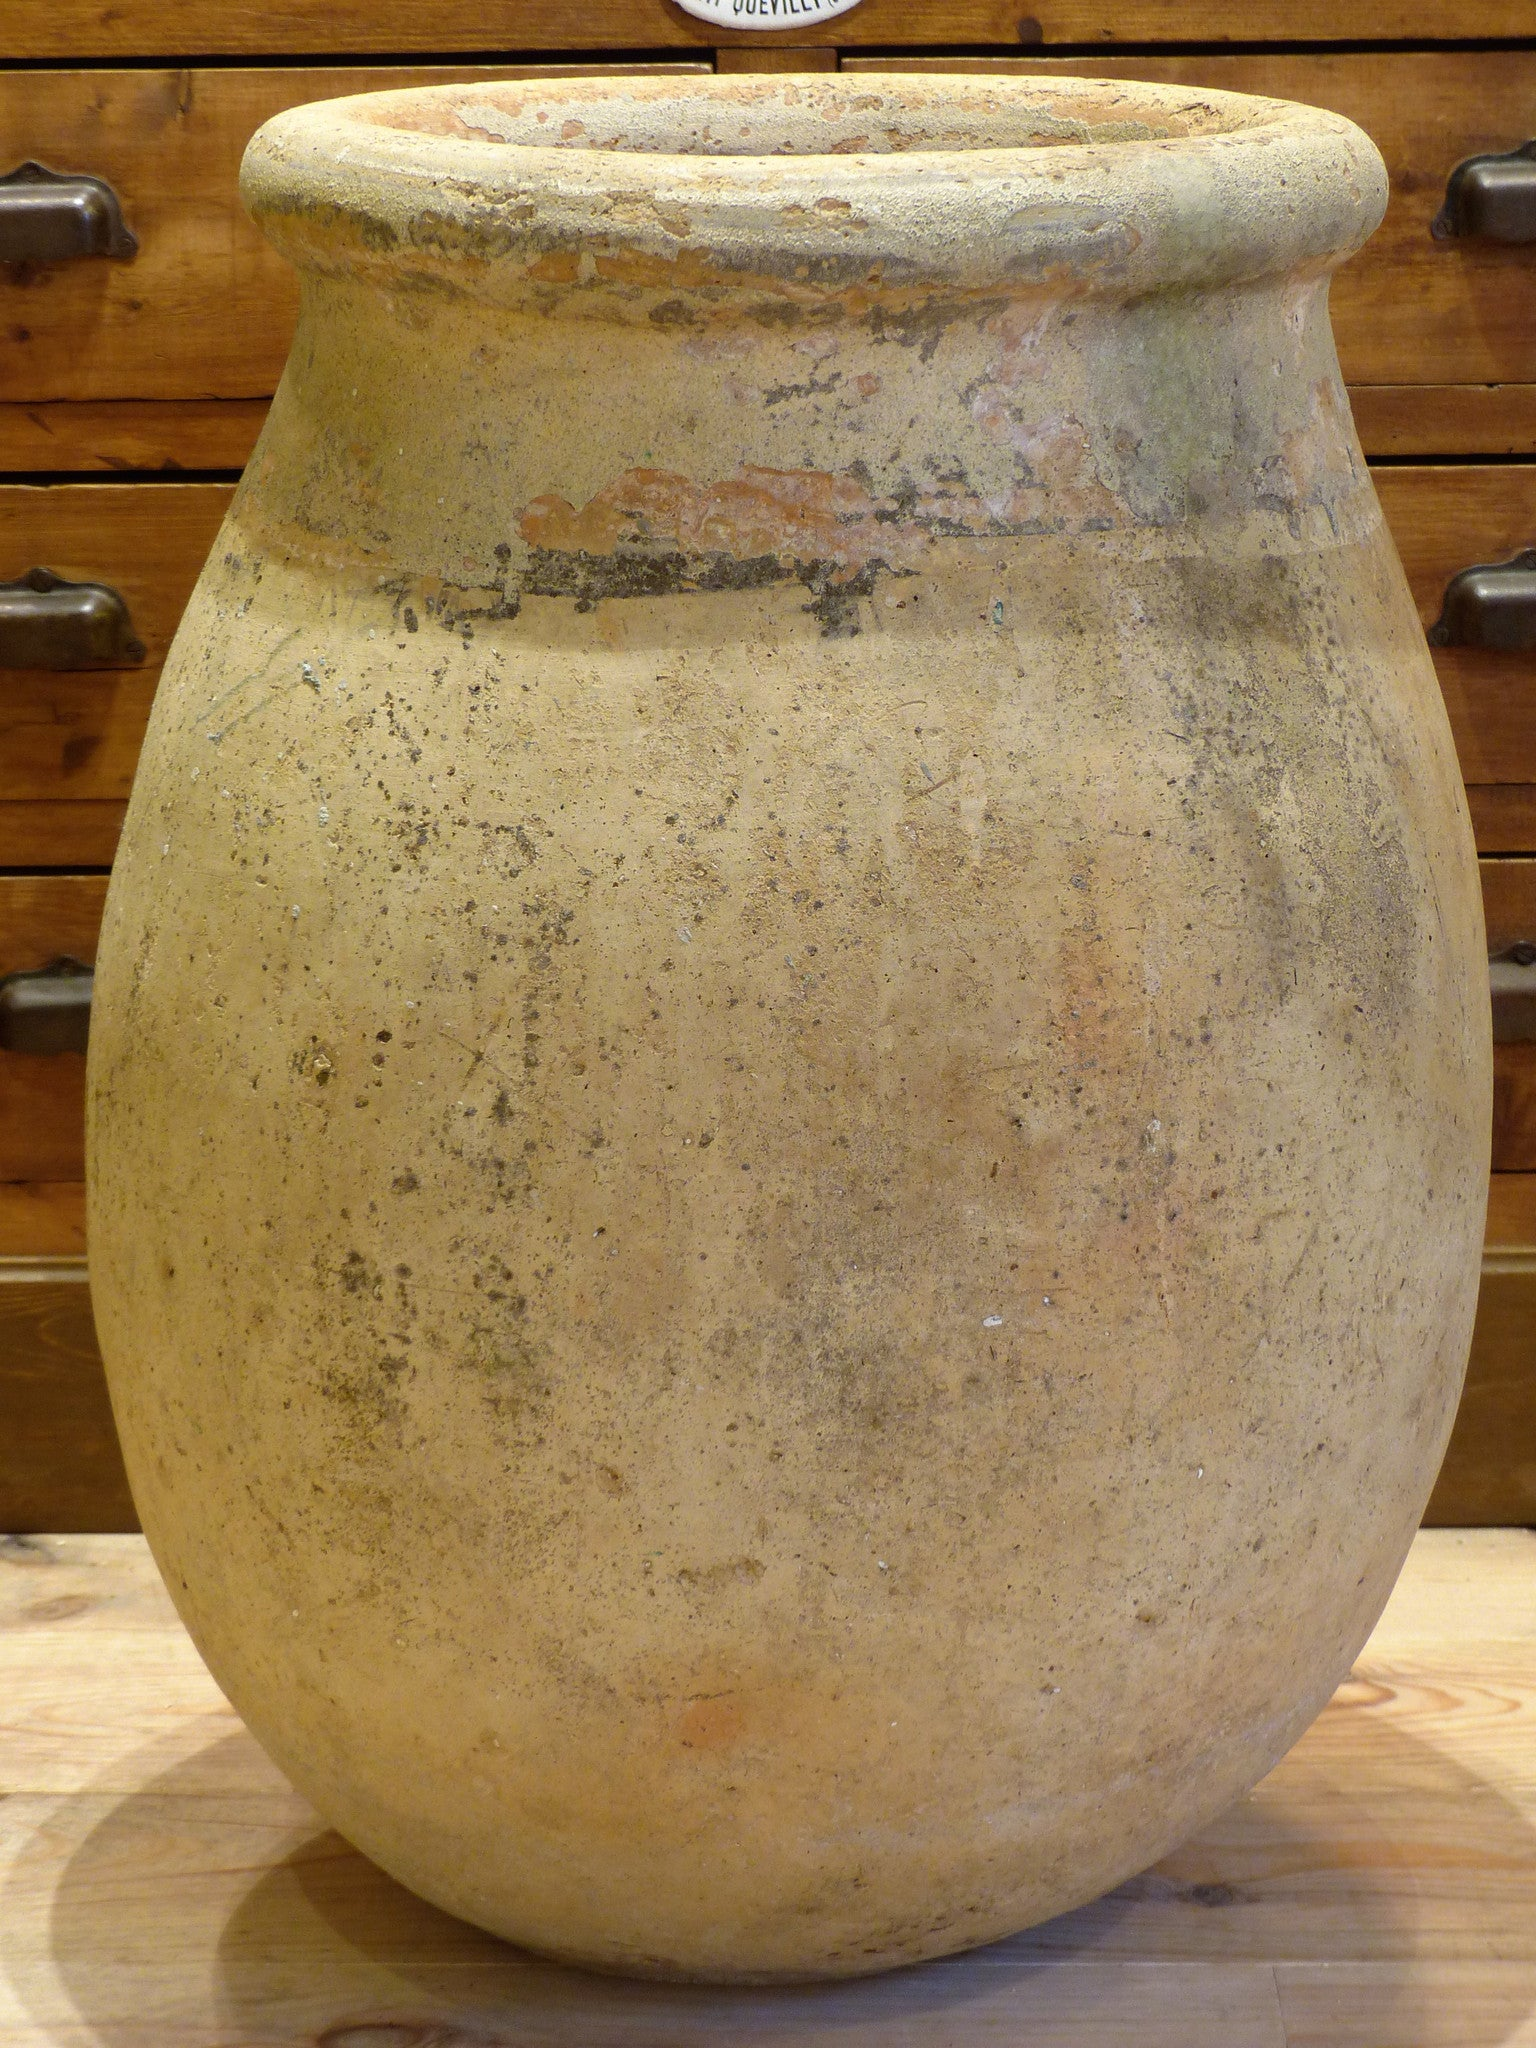 French biot jar – 19th century